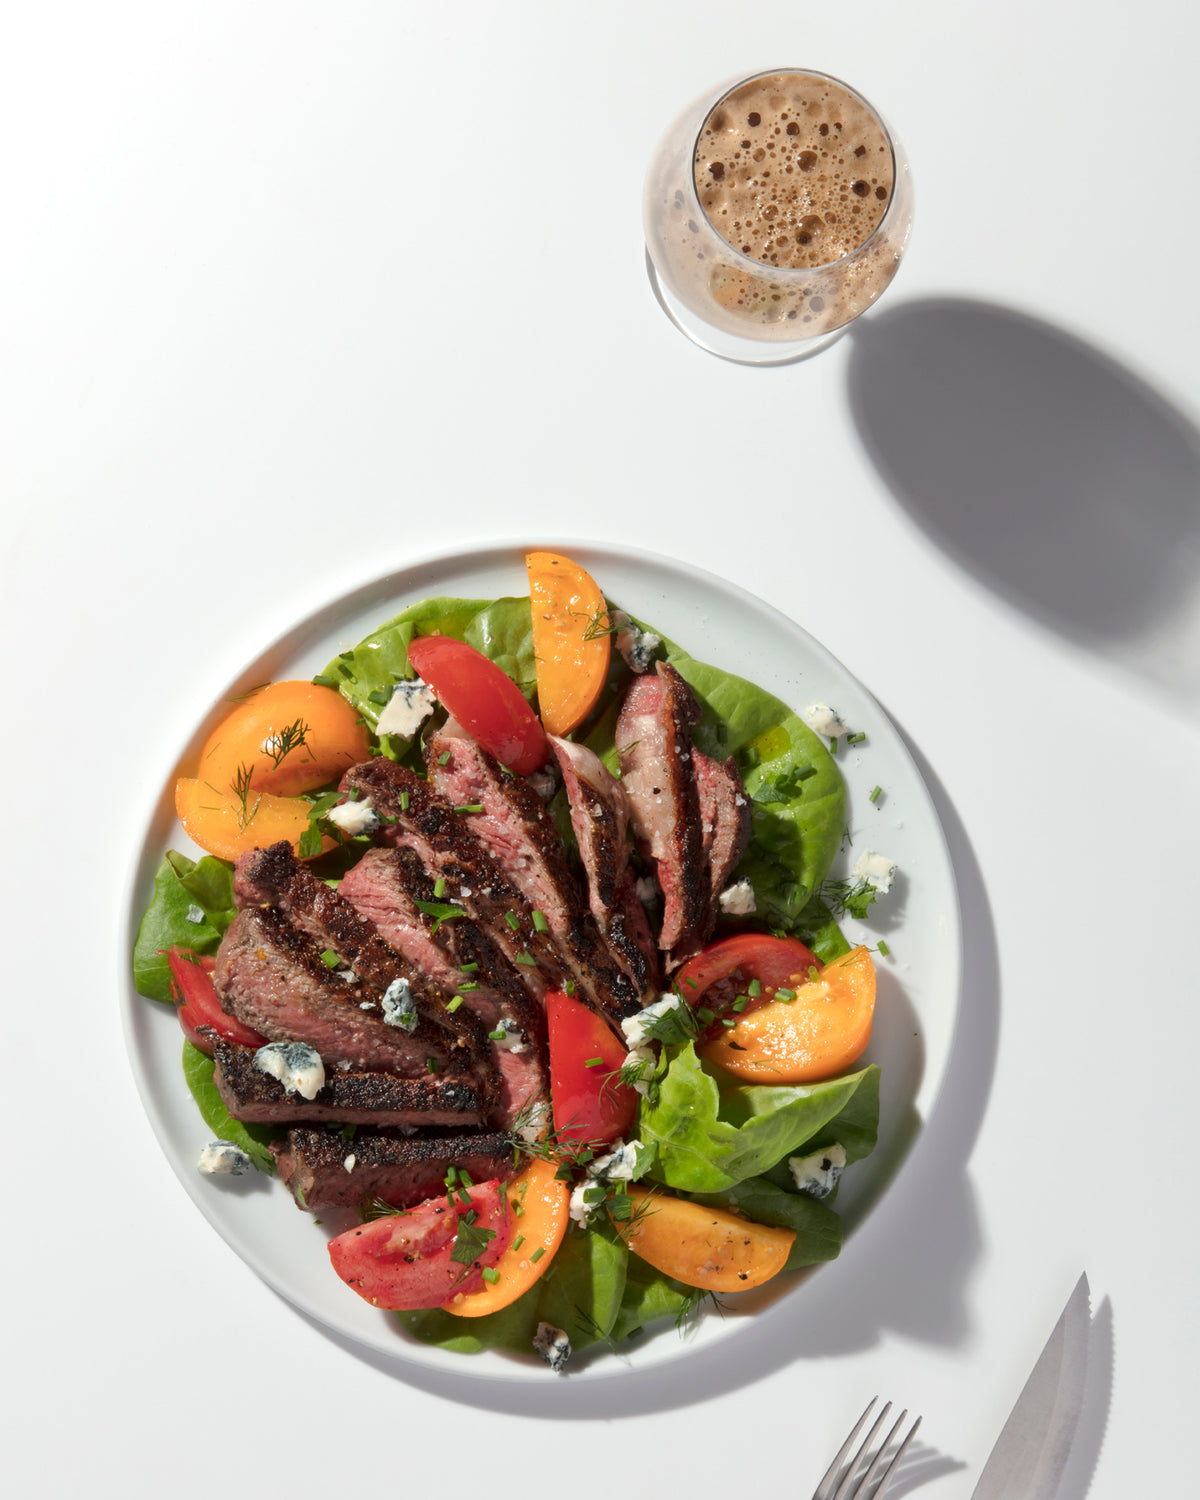 Grilled Rib-Eye with Heirloom Tomato and Little Gem Salad